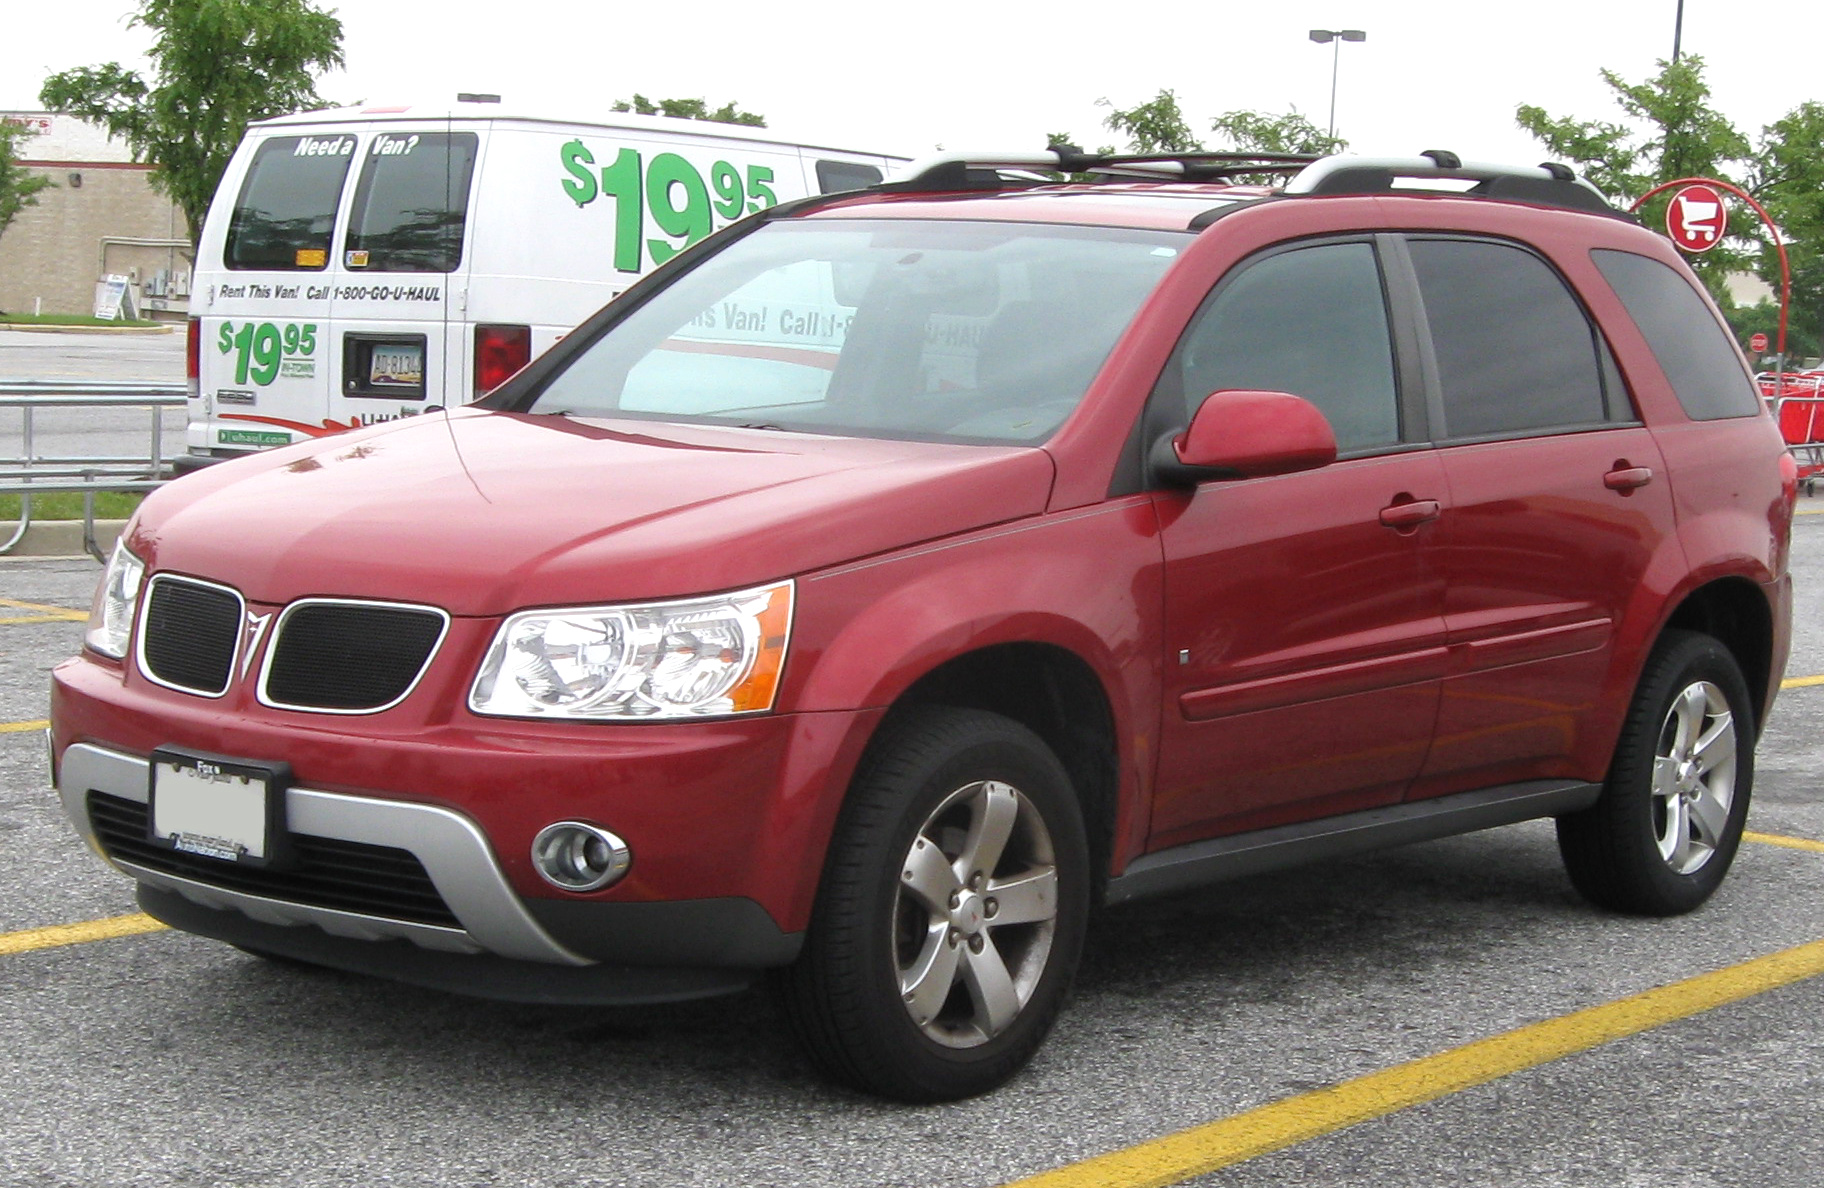 Pontiac Torrent #1